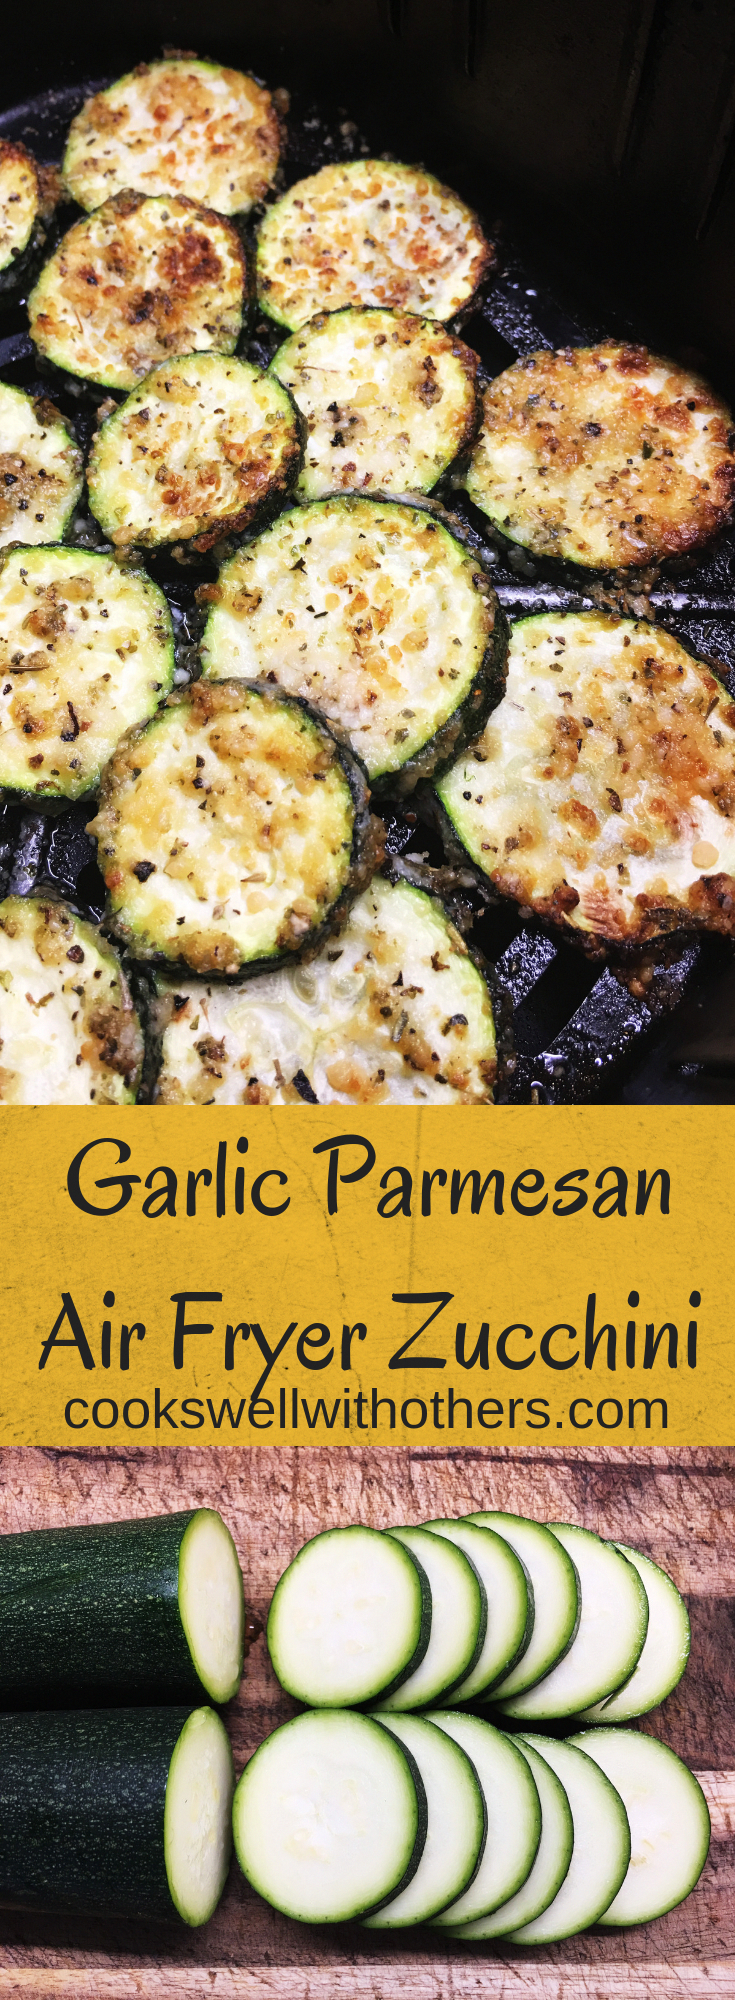 Garlic Parmesan Air Fryer Zucchini - Cooks Well With Others